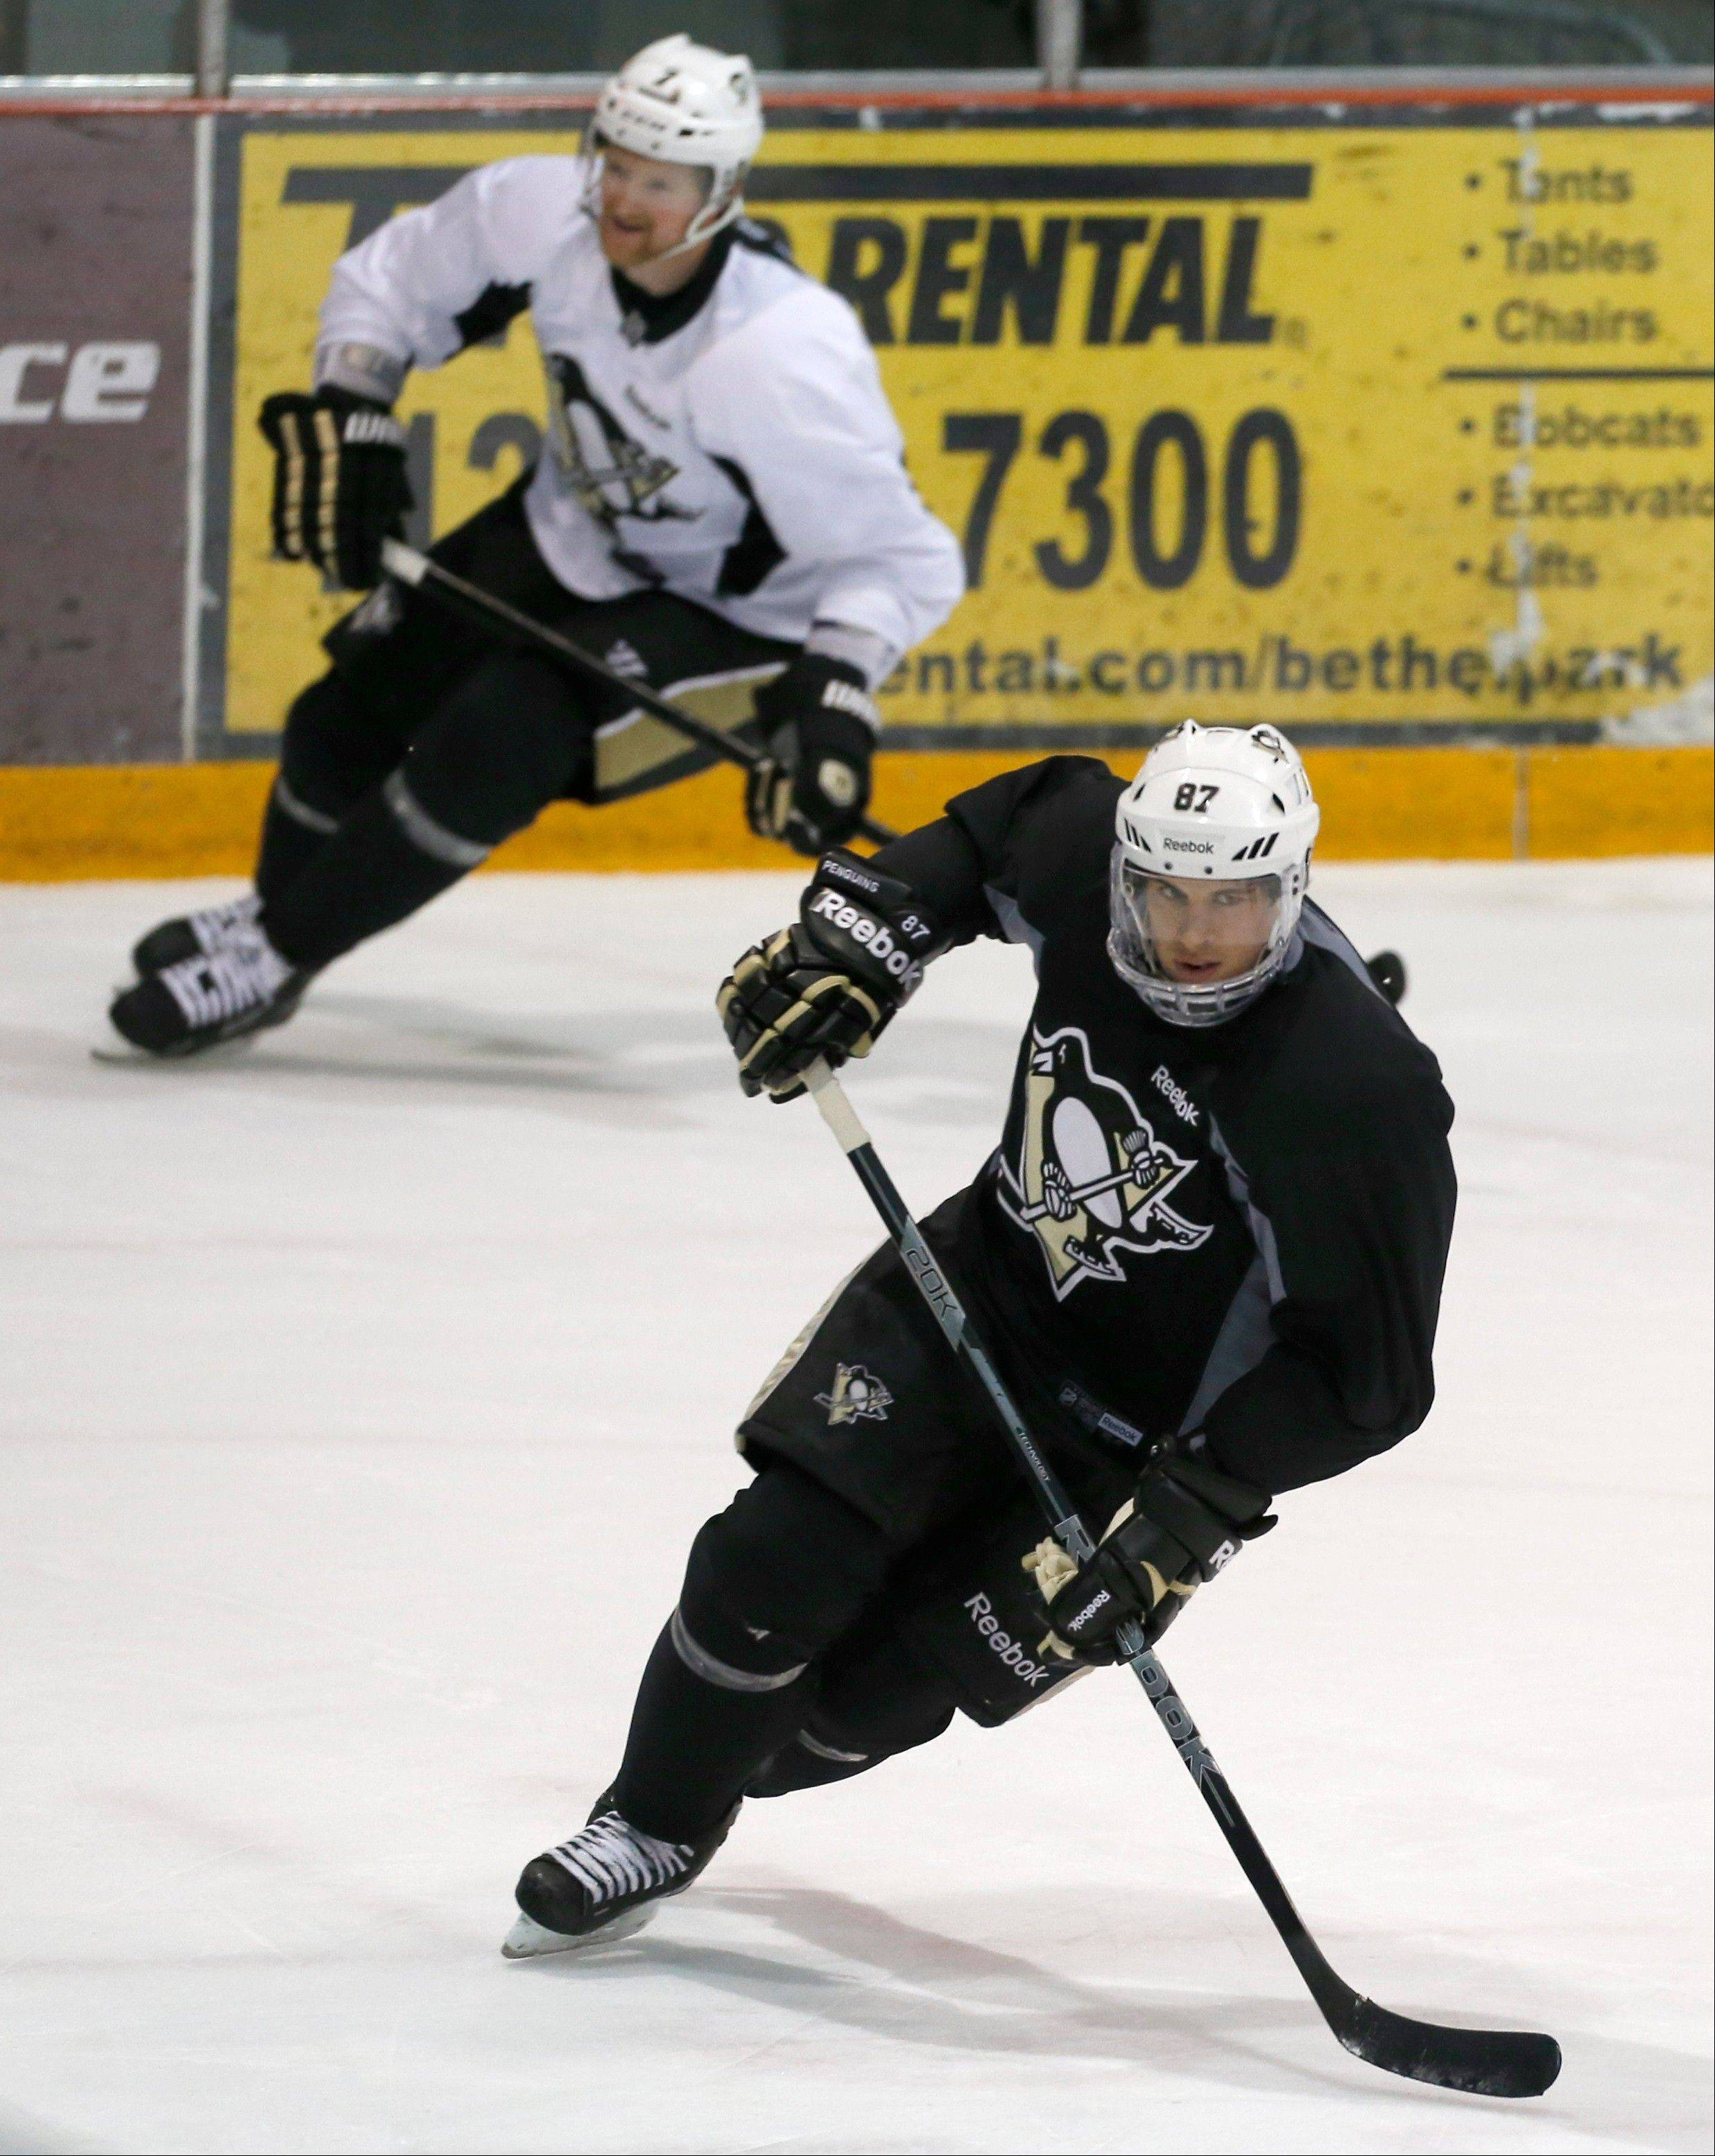 Pittsburgh Penguins Sidney Crosby, bottom, skates with Paul Martin as they participate in an NHL hockey practice on Friday, April 26, 2013, in Canonsburg, Pa. (AP Photo/Keith Srakocic)